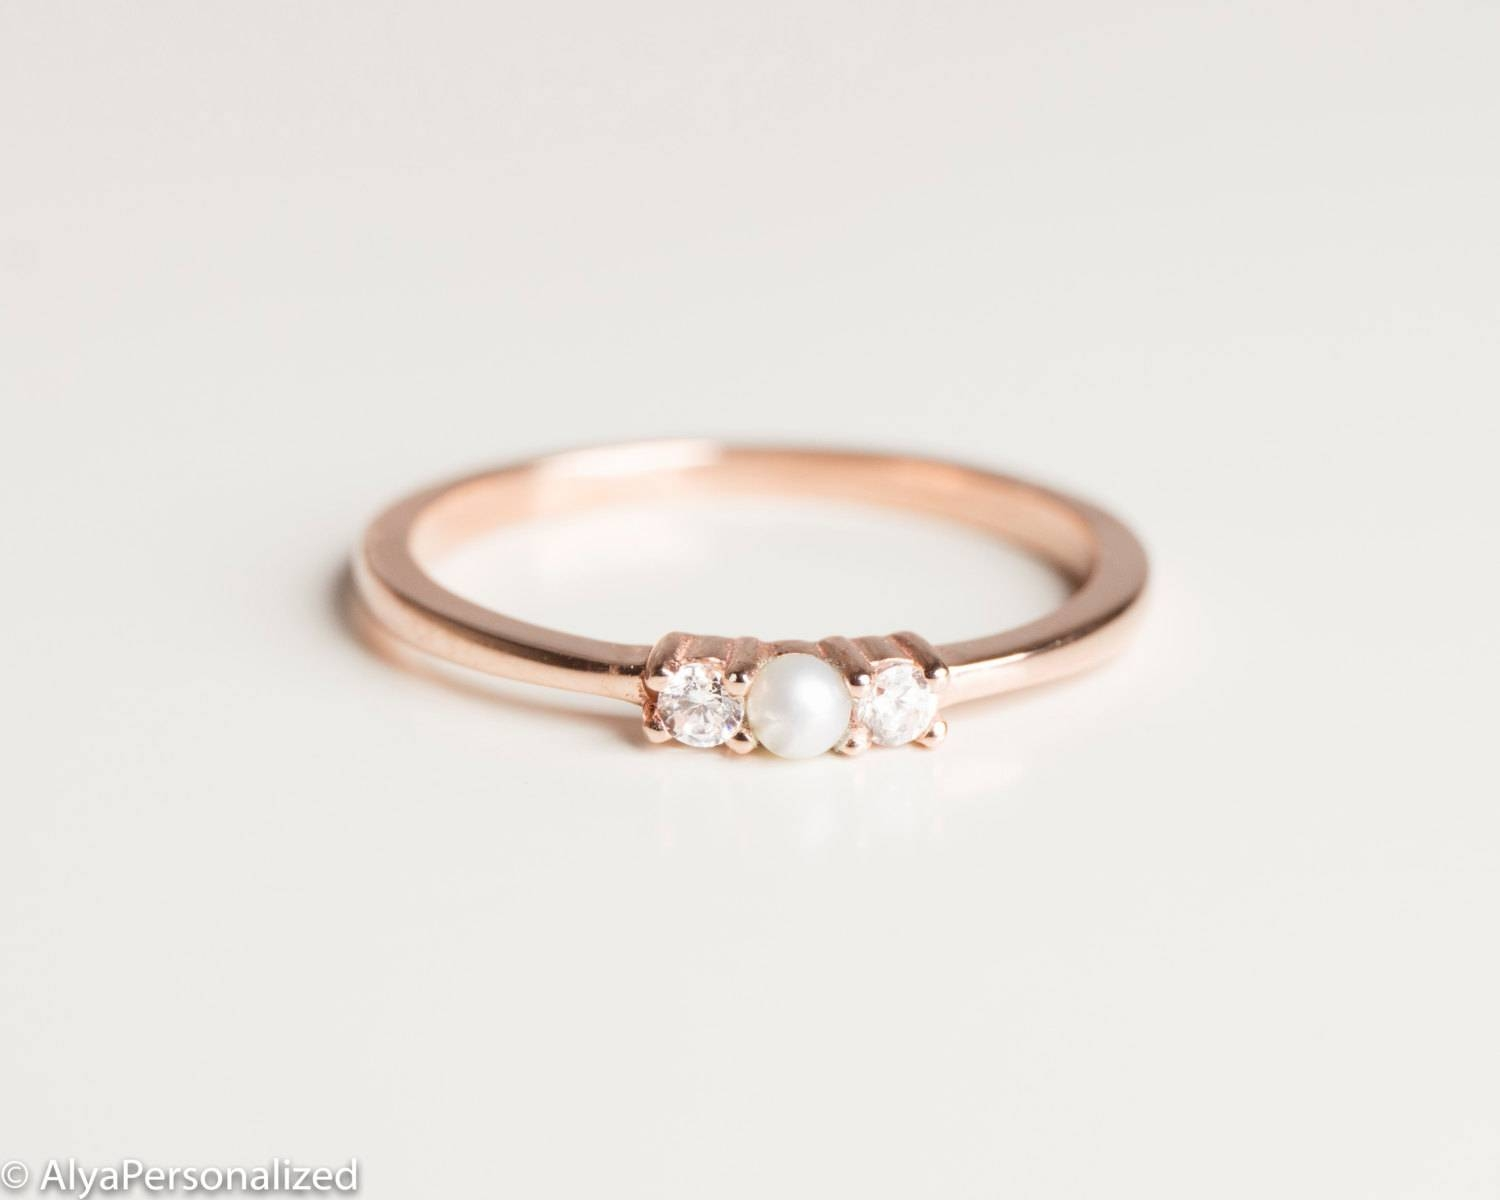 Anniversary Ring Simple Ring Band Thin Rose Gold Ring With Current 14K Gold Anniversary Rings (View 2 of 15)